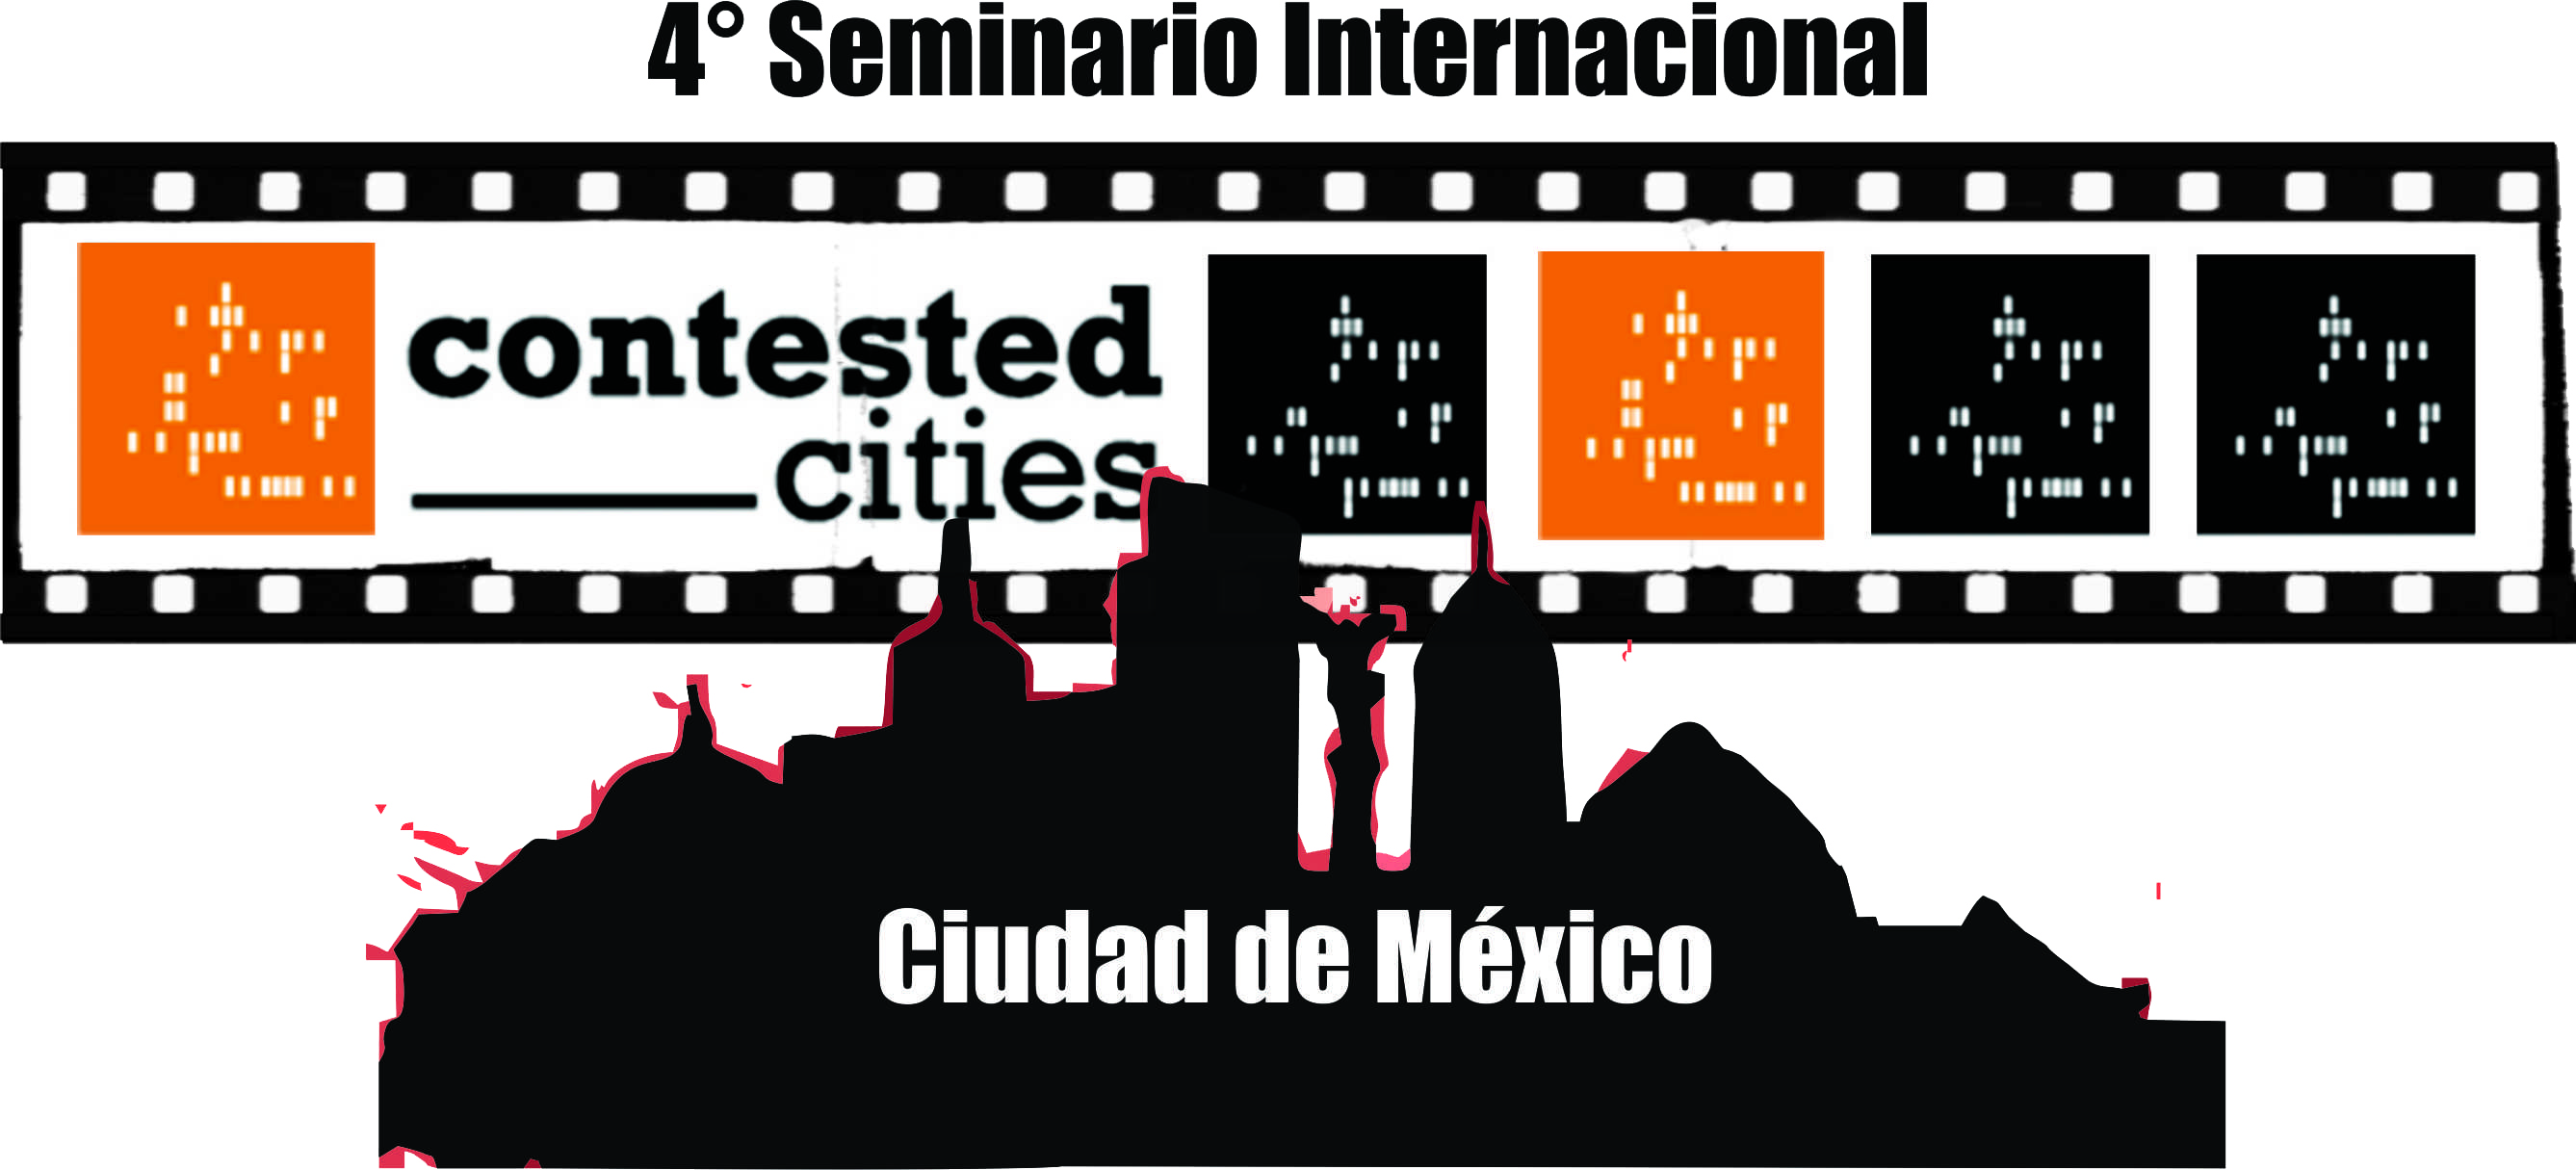 4o Seminario Red Internacional Contested Cities. Exhibición de Videos Sesión I. Centro Cultural Universitario Tlatelolco, Ciudad de México 12 abril 2015